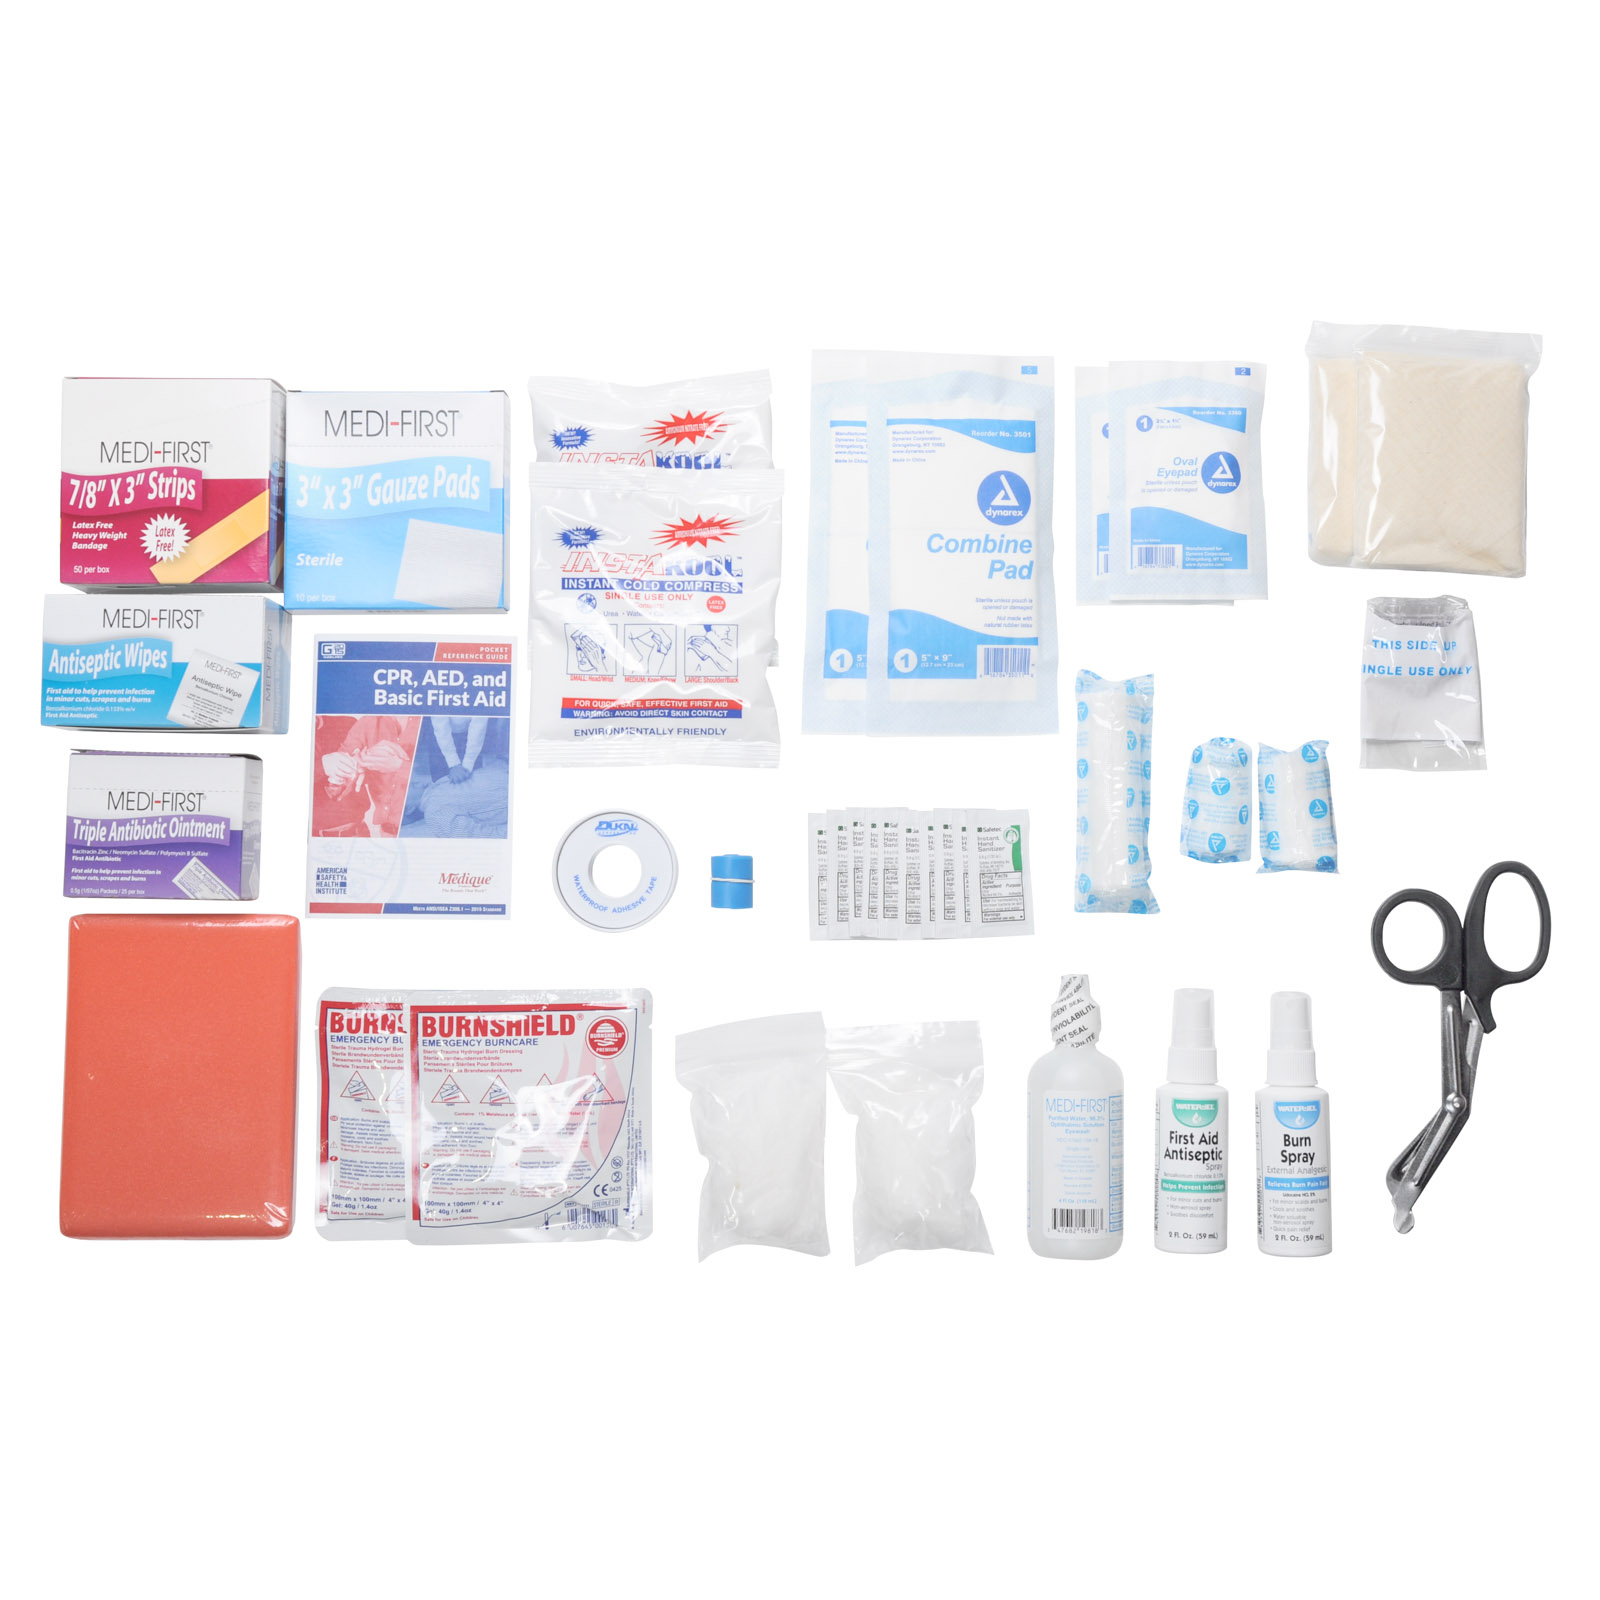 Osha Class B First Aid Kit Refill Pack | MFASCO Health & Safety